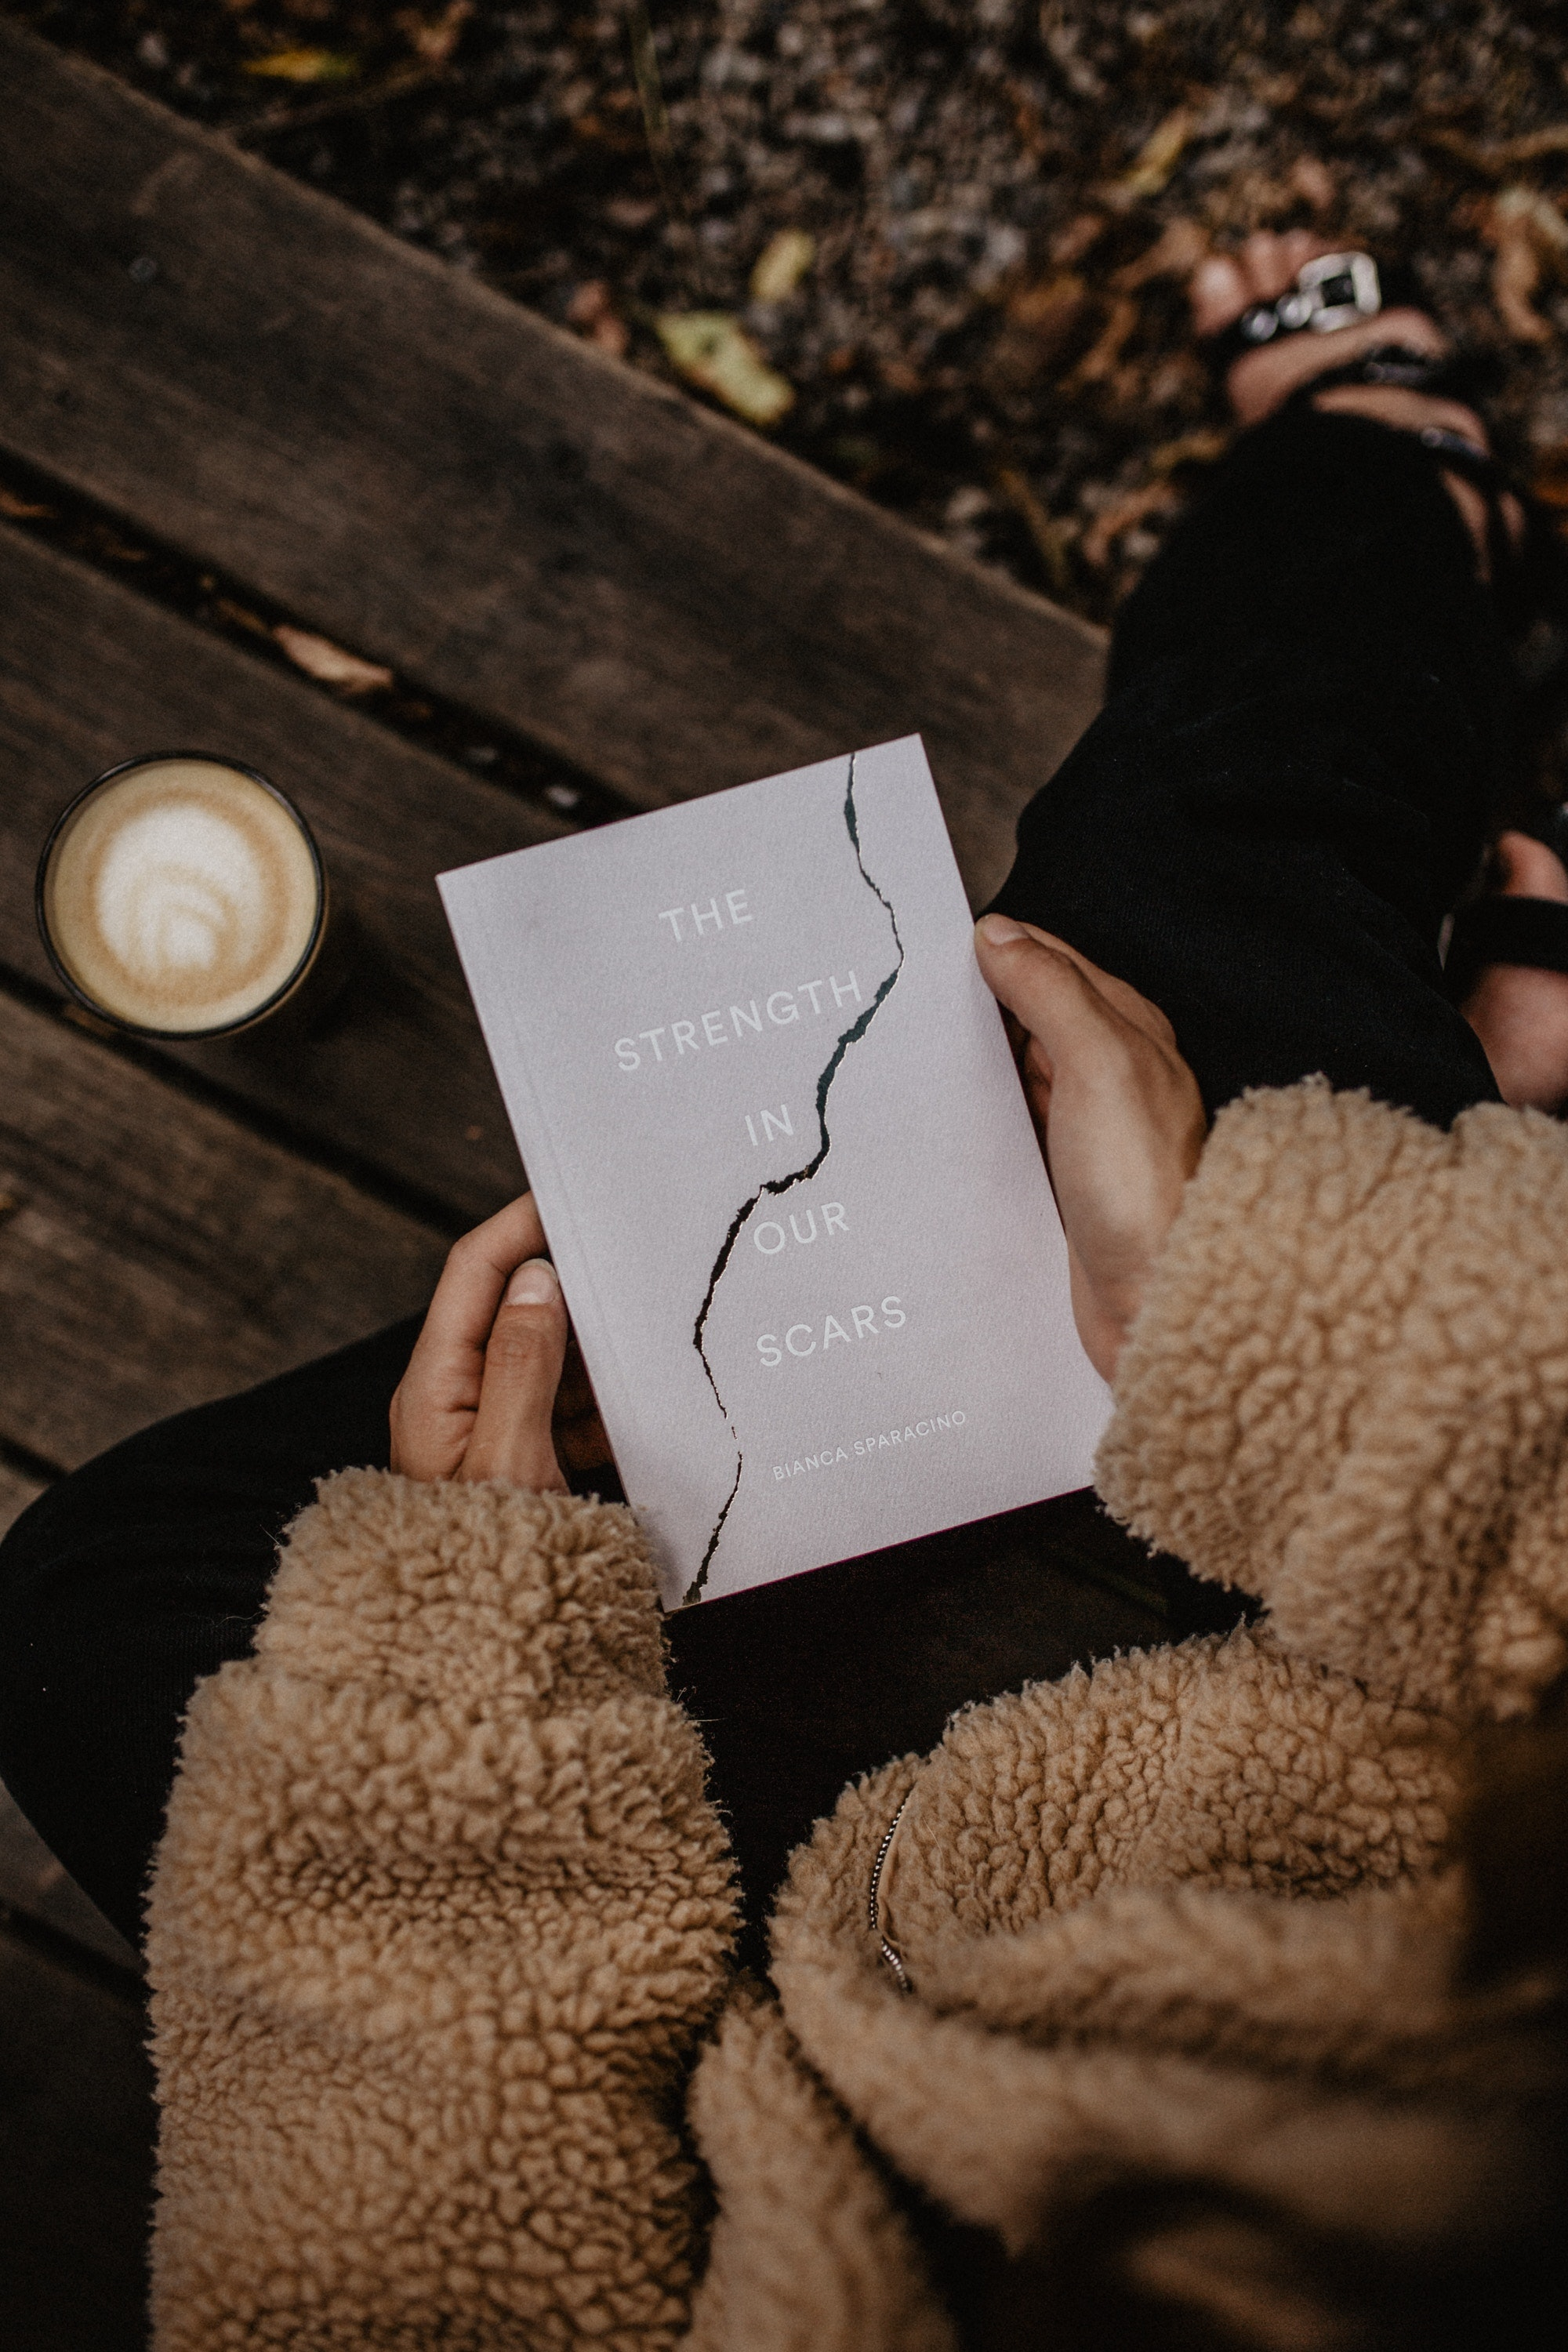 A person sitting on a bench holding a book